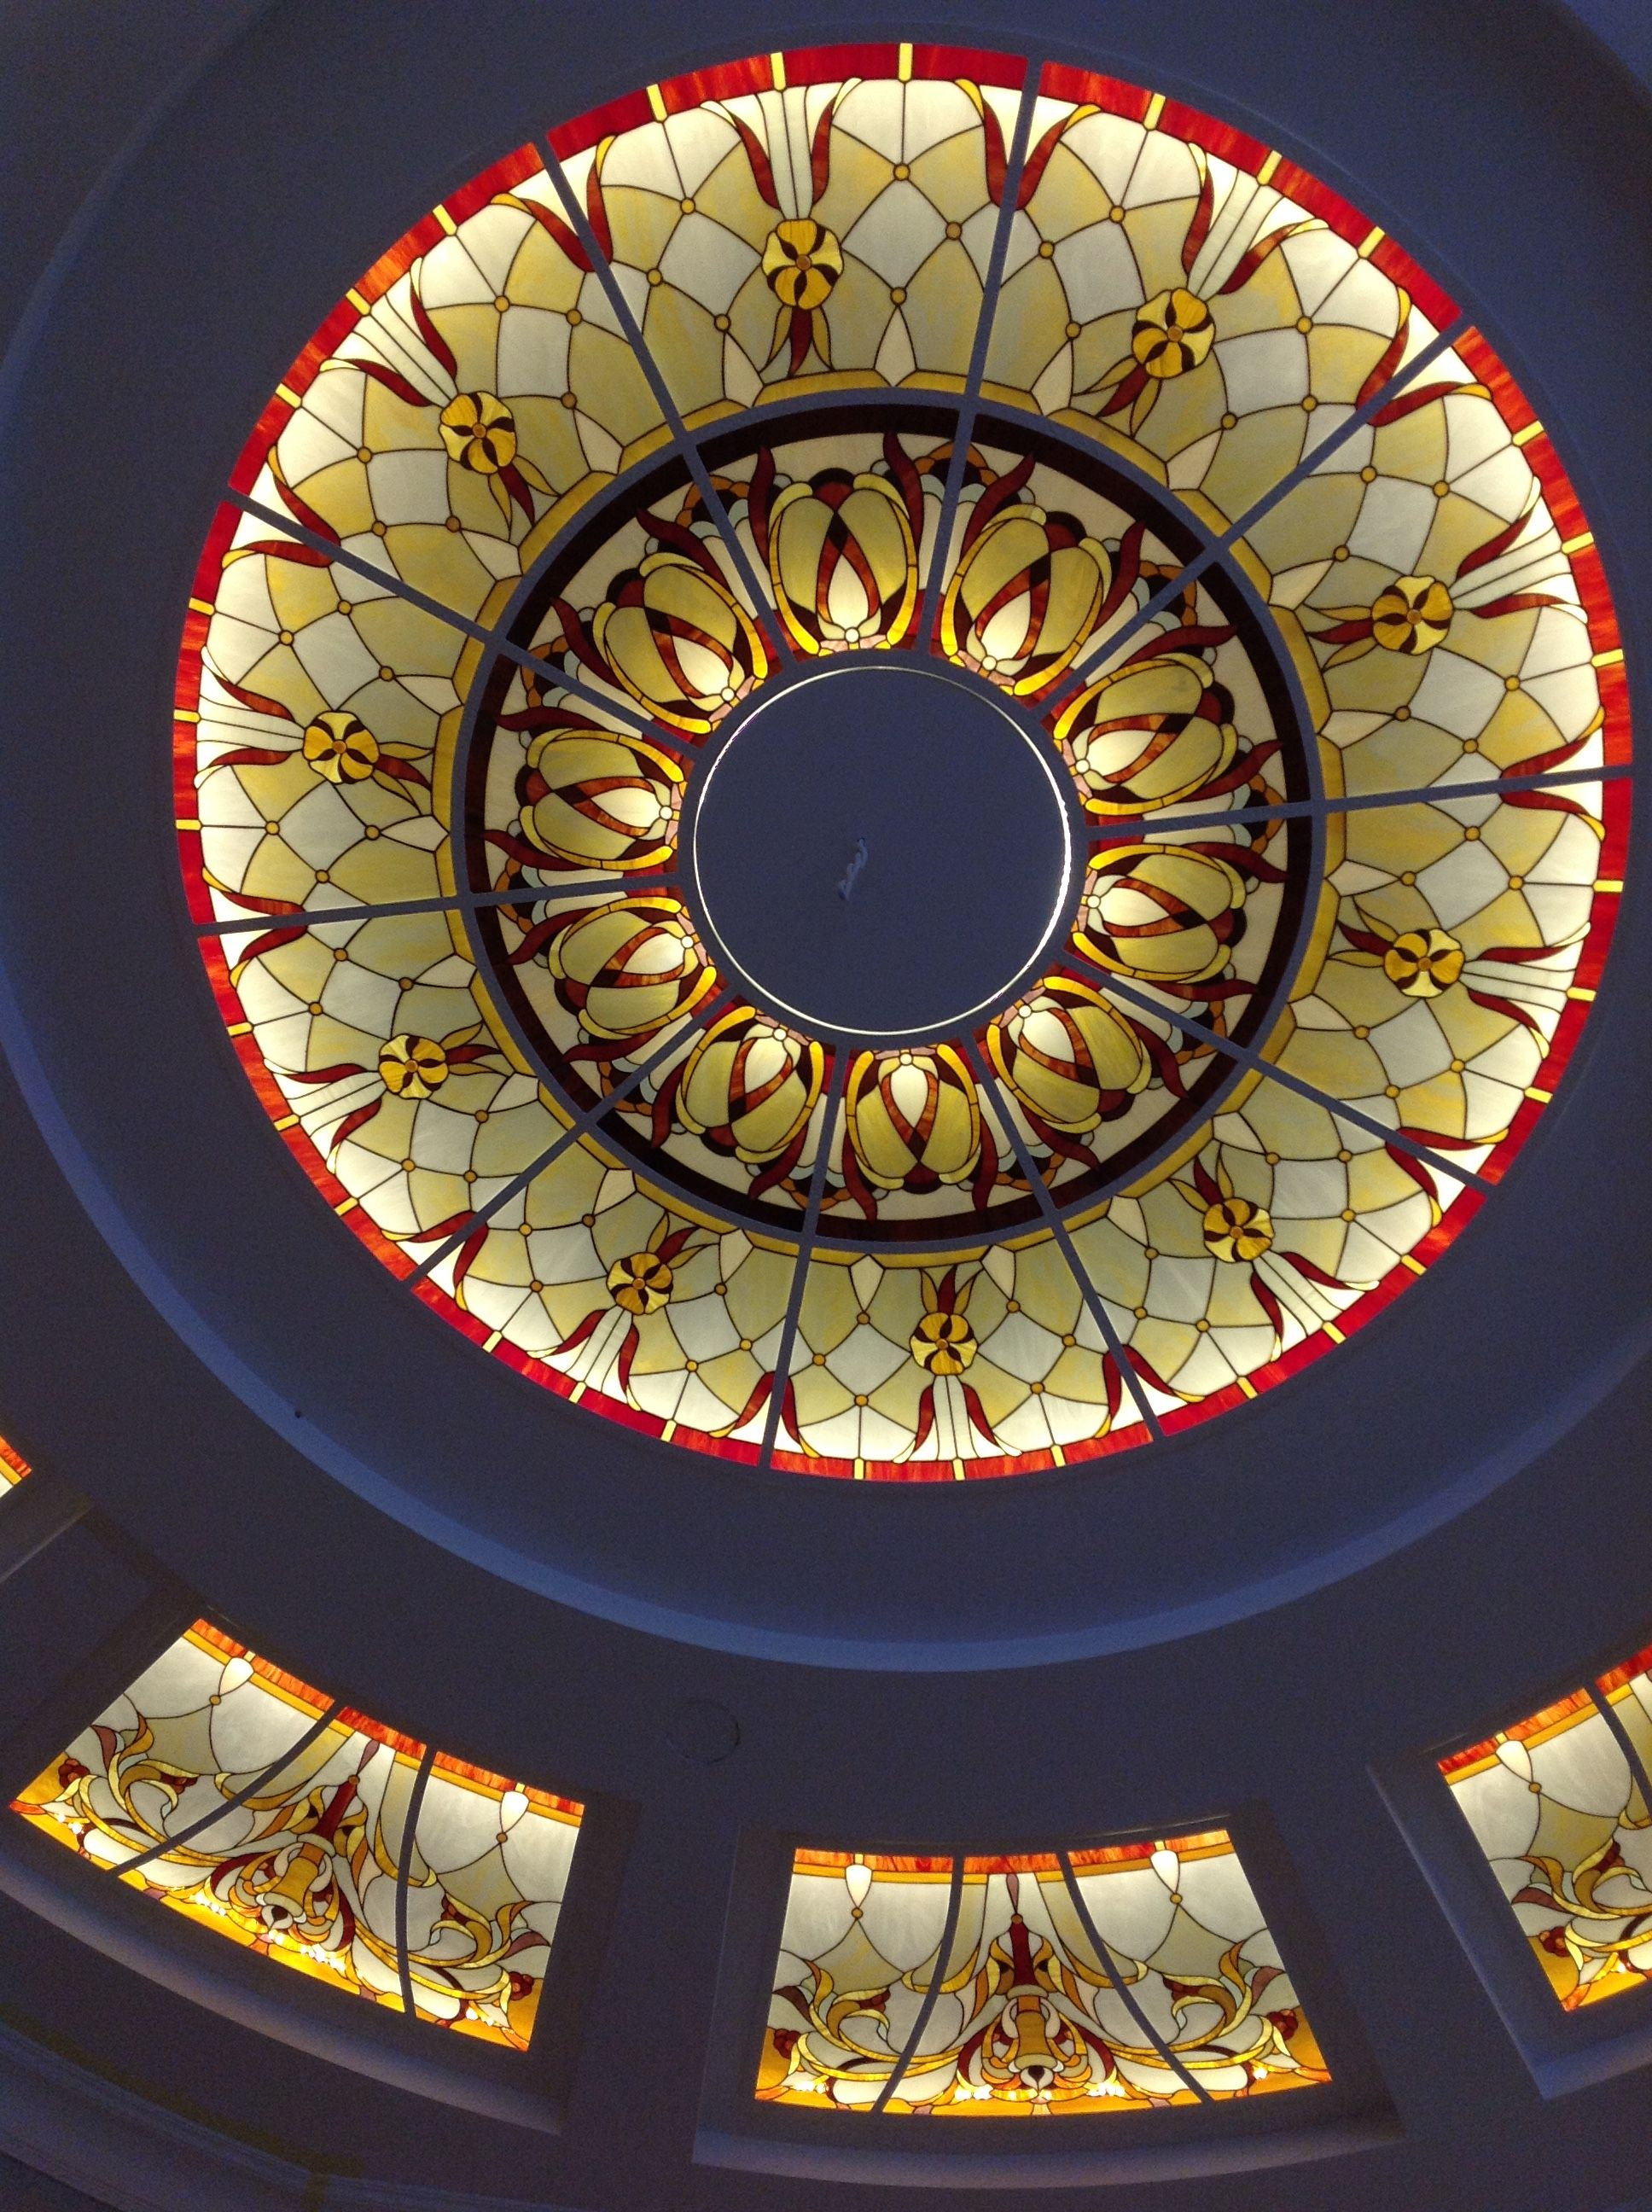 Pin By Son Sook On 스테인드글라스조명등 Stained Glass Designs Ceiling Design Ceiling Design Modern